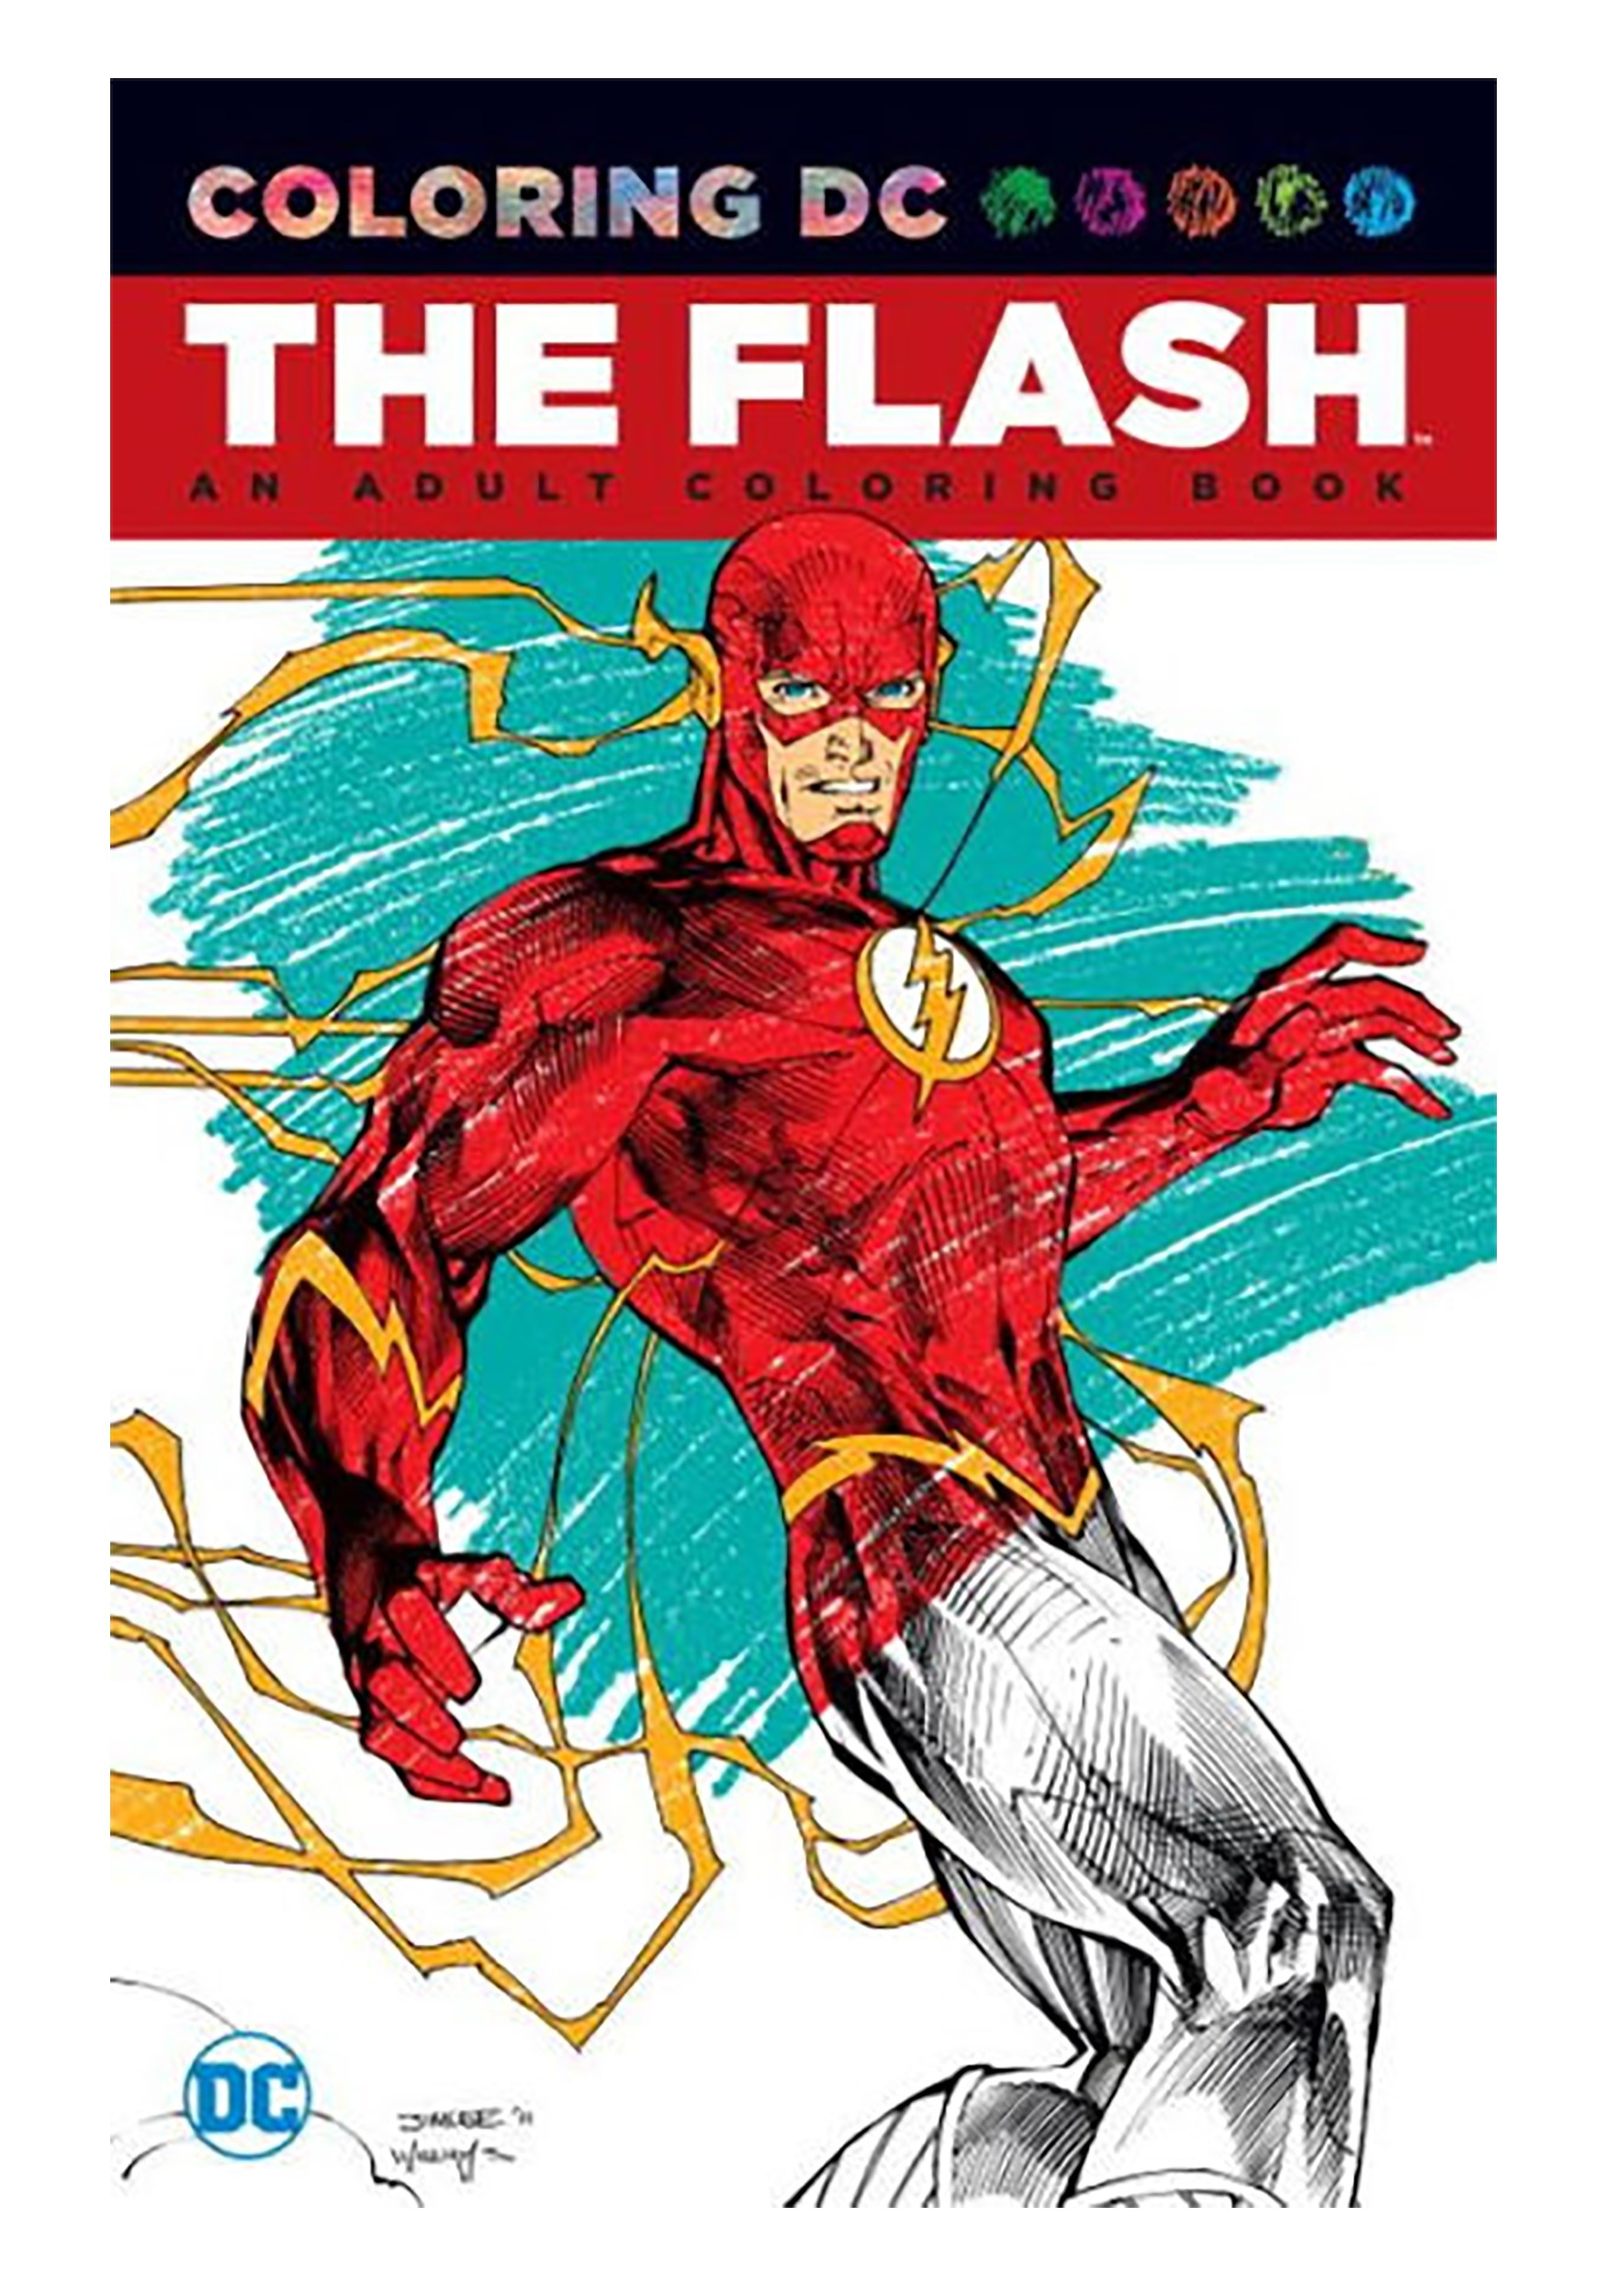 - Coloring DC: The Flash- An Adult Coloring Book